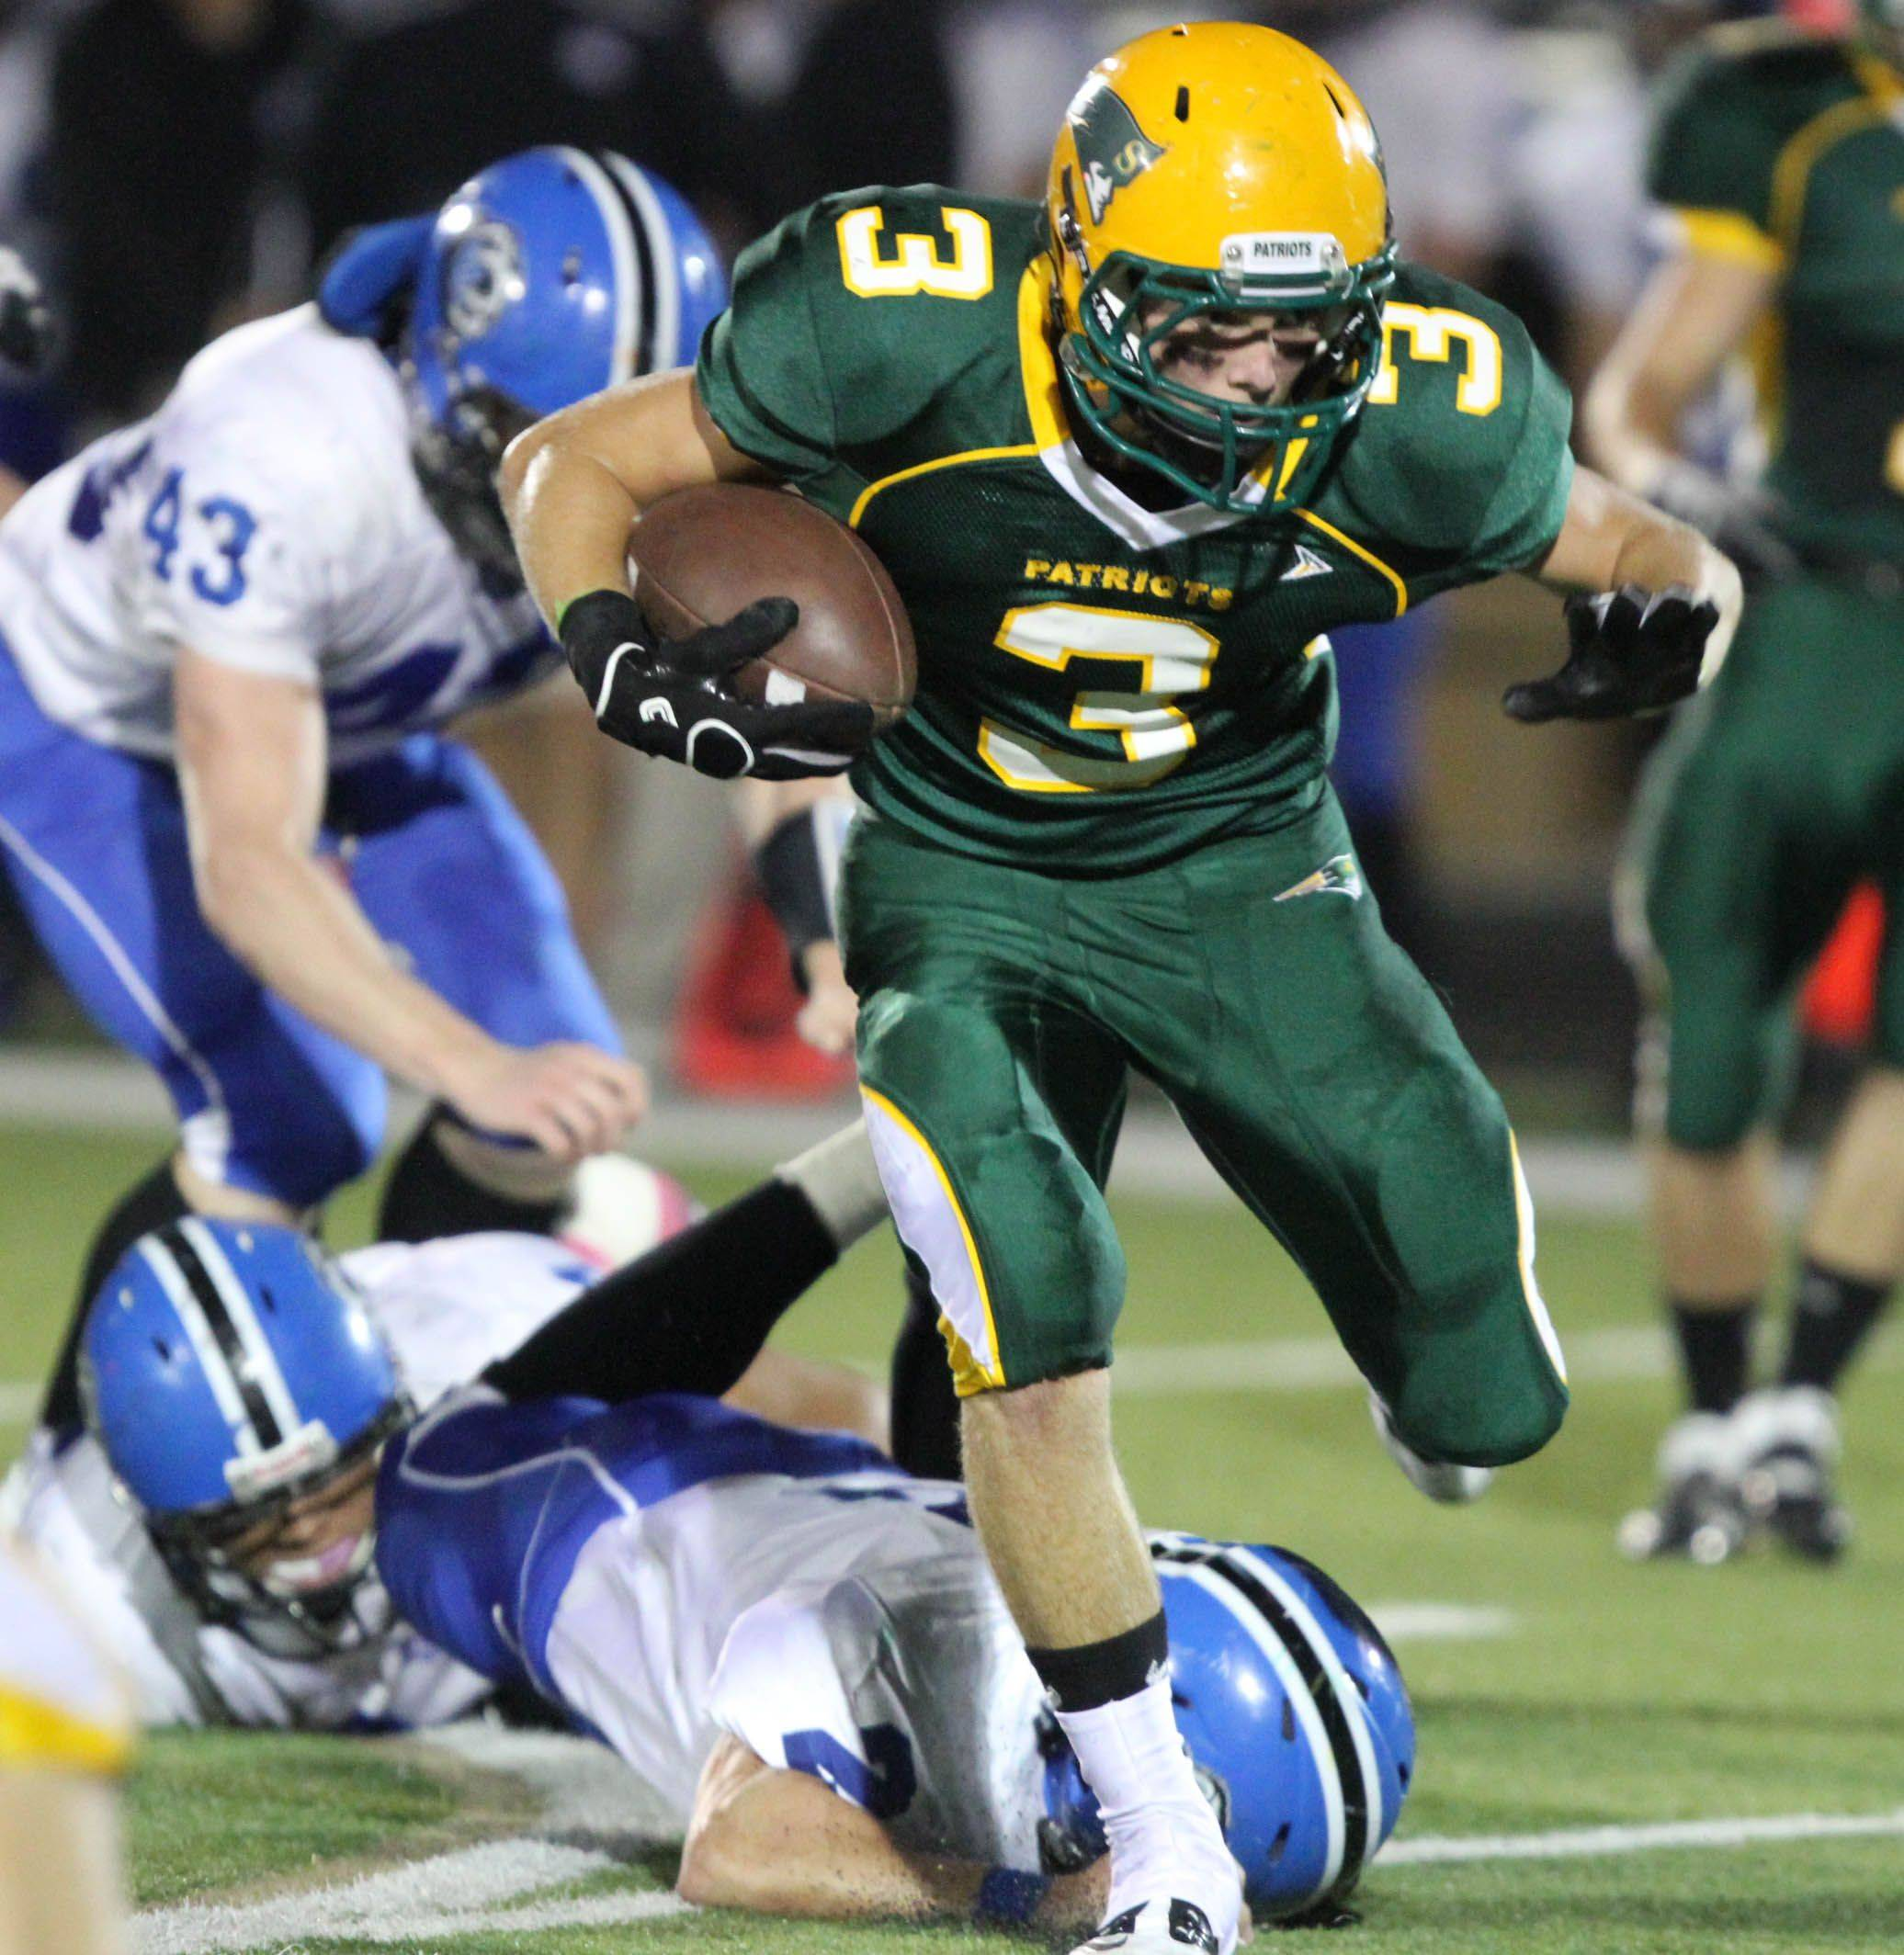 Stevenson's Anthony Bozin runs the ball in the first half against Lake Zurich at Stevenson on Thursday, October 6th.